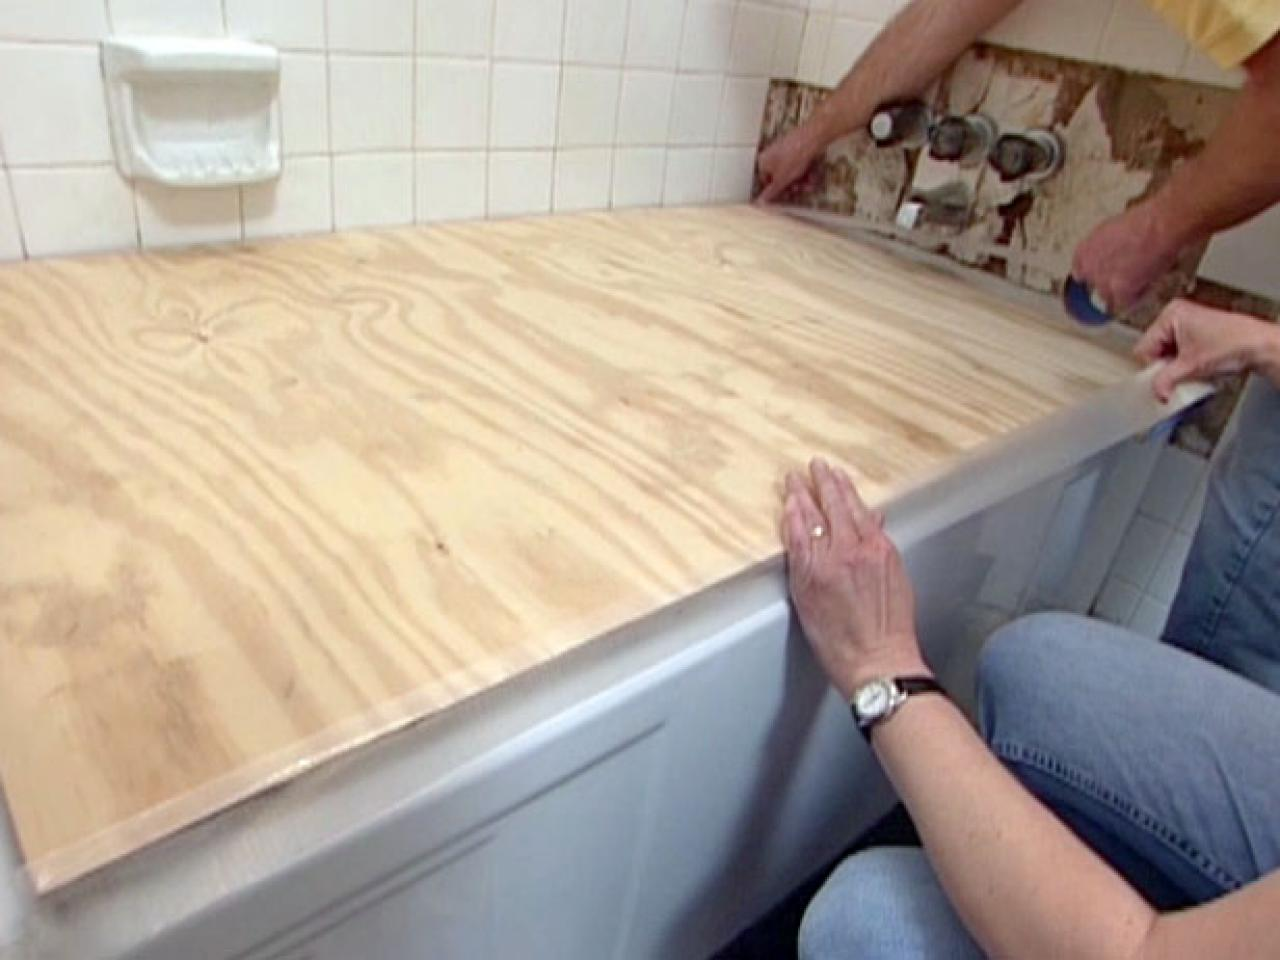 How To Begin Demolition Of A Bathroom Howtos DIY - Diy bathroom renovation steps